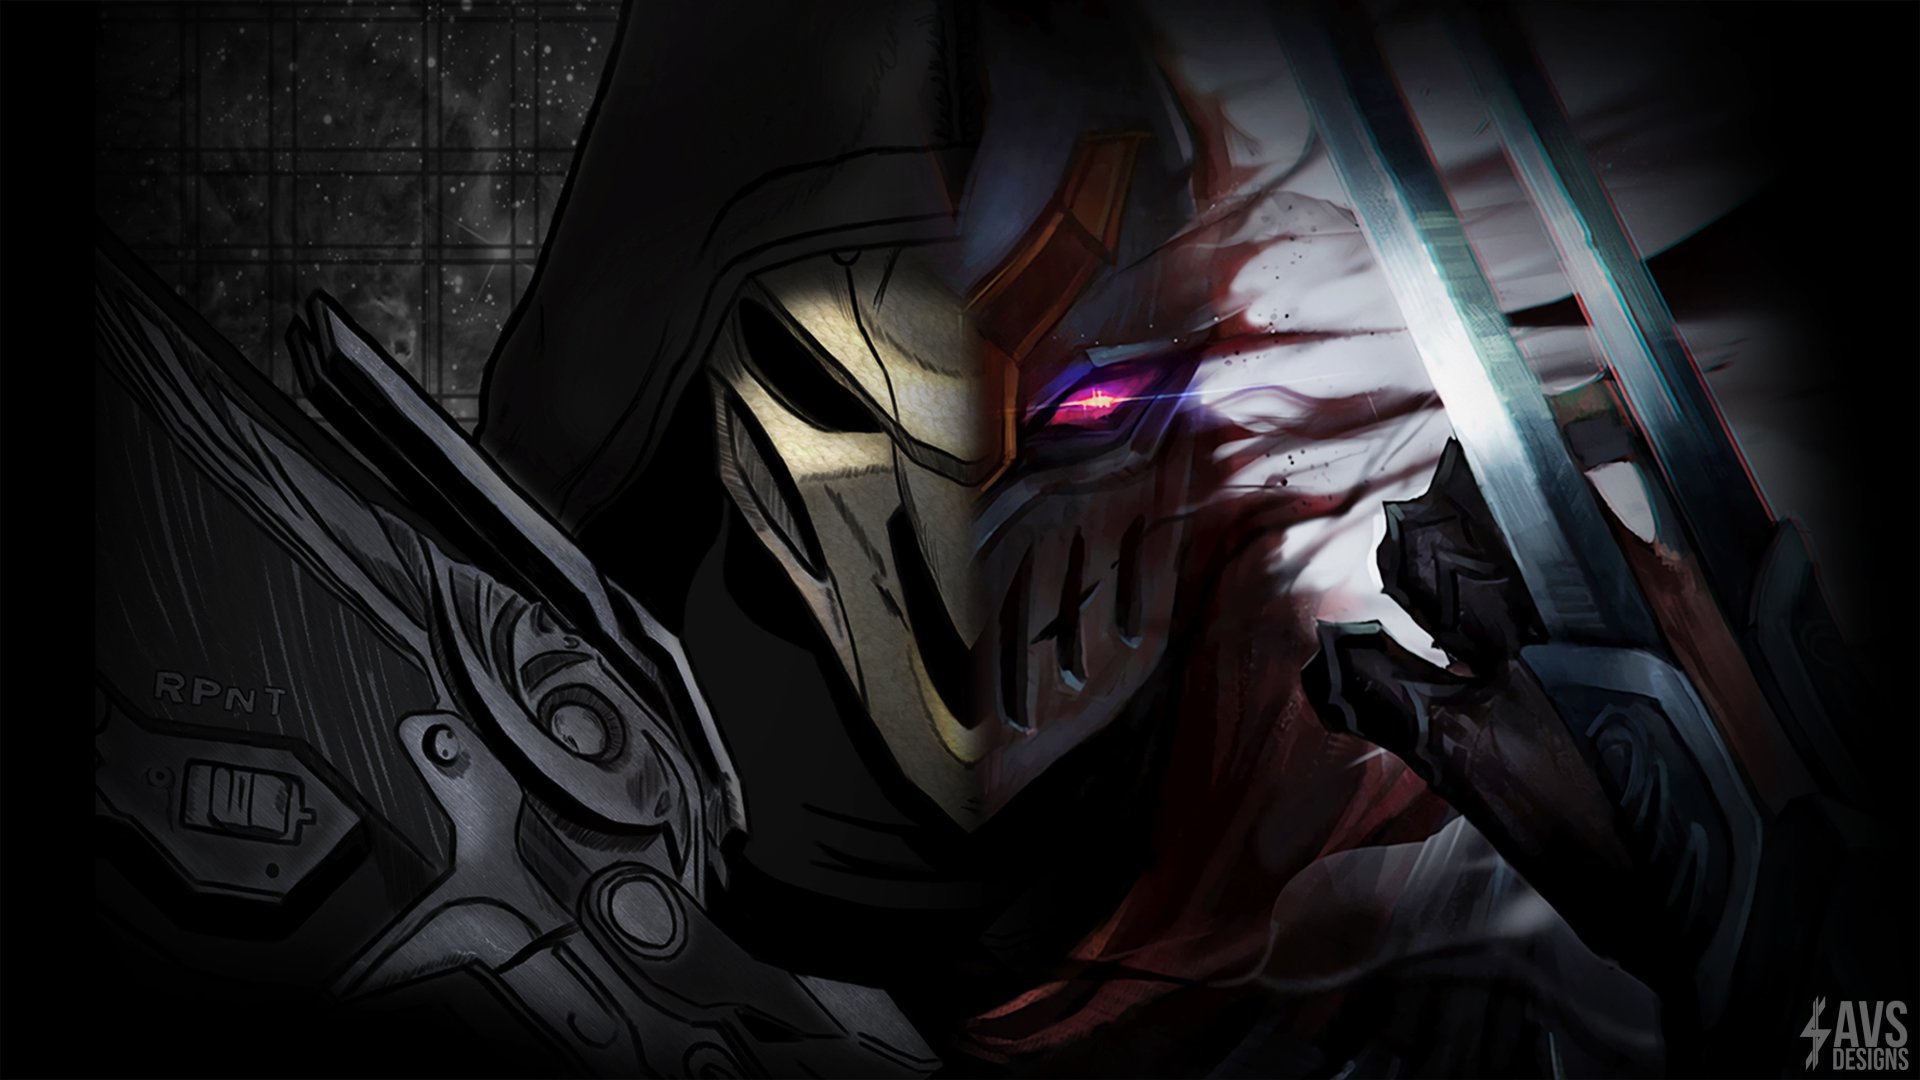 Video Game - Crossover  Overwatch League Of Legends Reaper (Overwatch) Zed (League Of Legends) Wallpaper